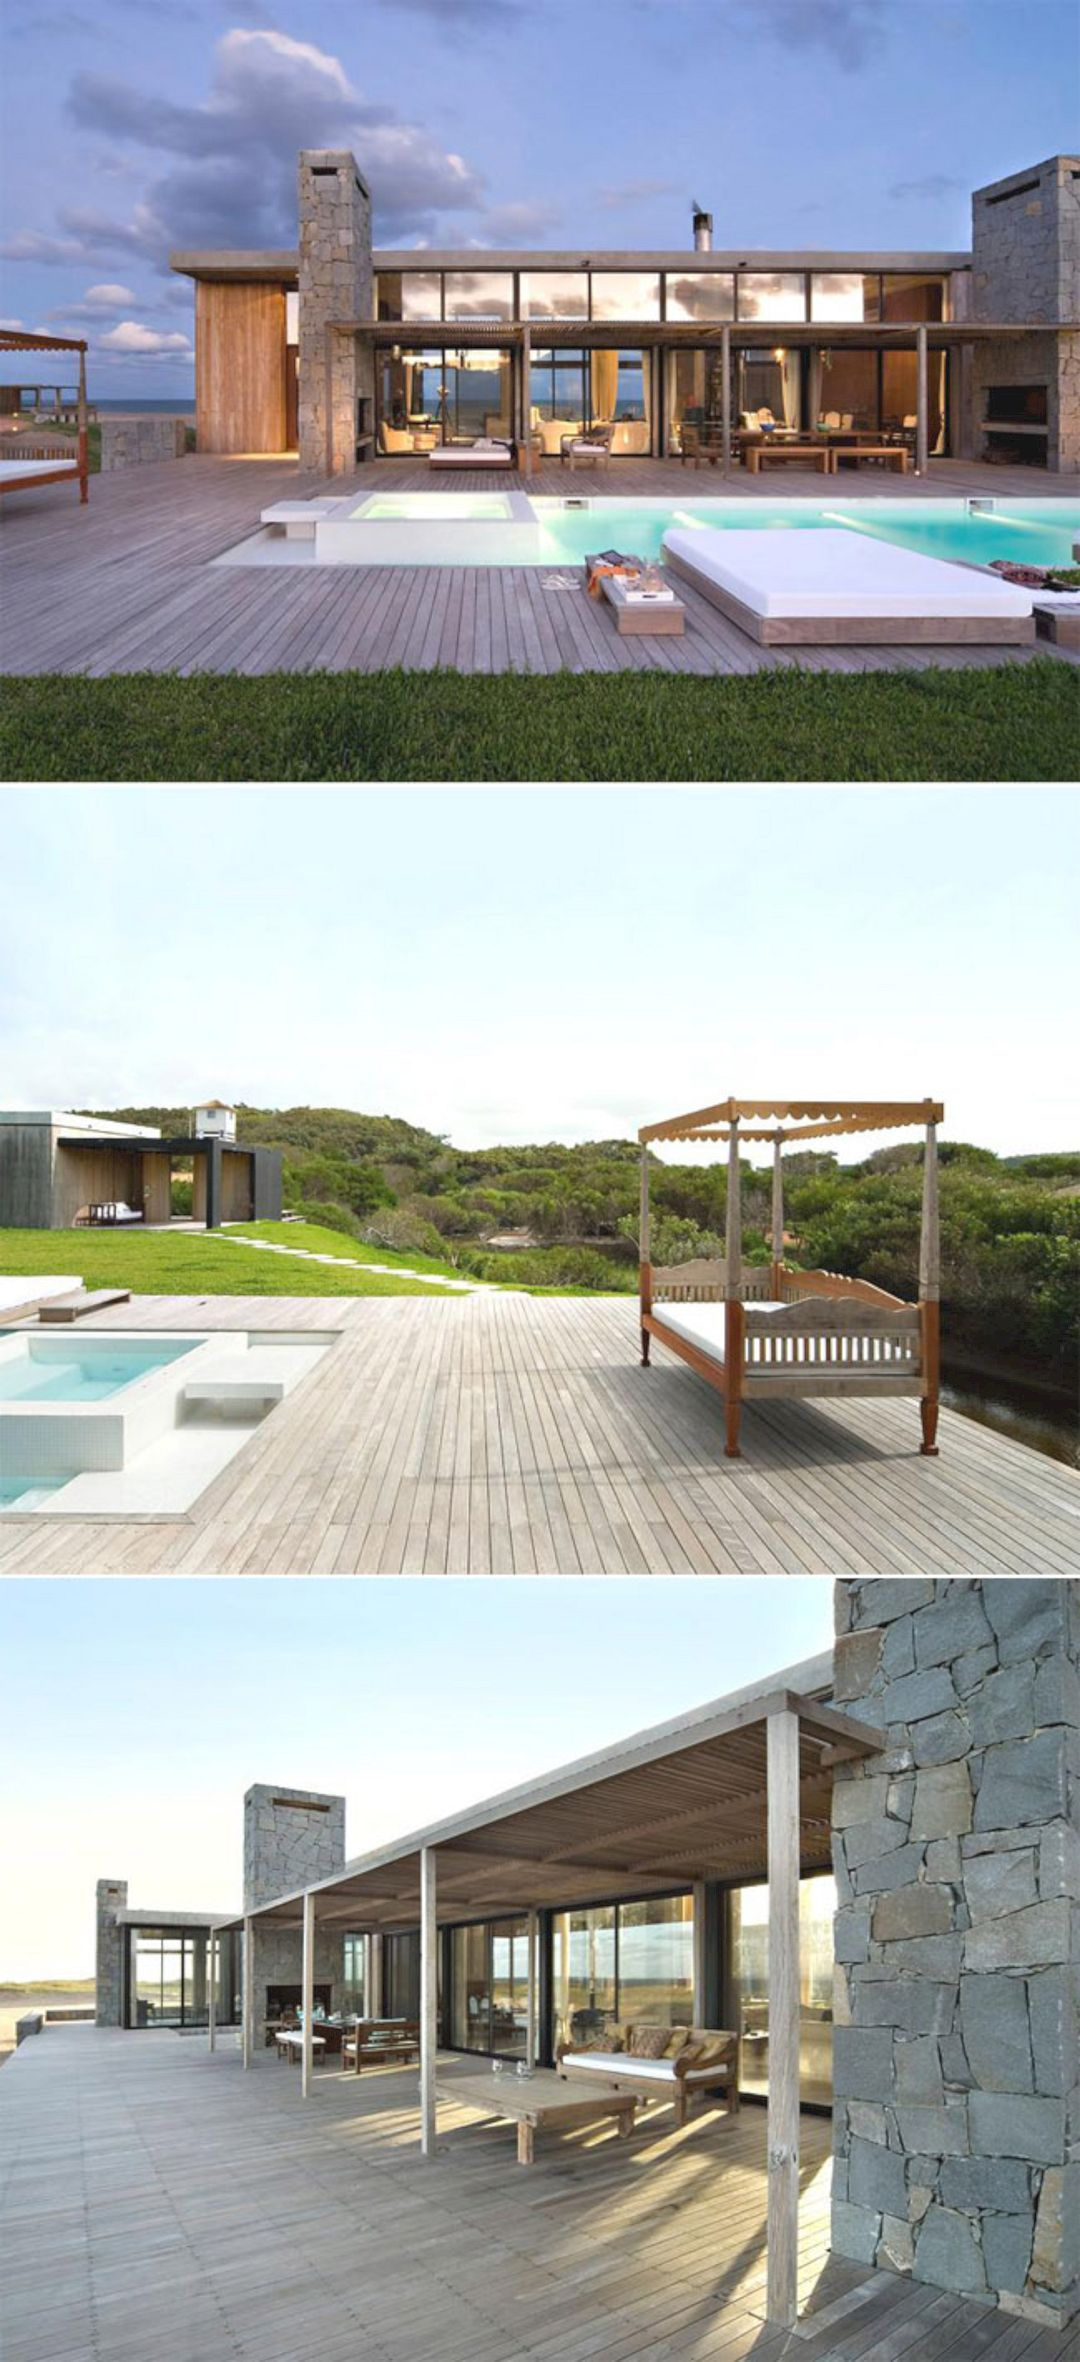 Modern Beach House Design Ideas to Welcome Summer | House Design and on beach house design layout, pool house construction, pool table layout, pool kitchen layout, ranch house design layout, pool villa layout, pool house lighting, pool house roofing, pool bathroom layout, pool plumbing layout,